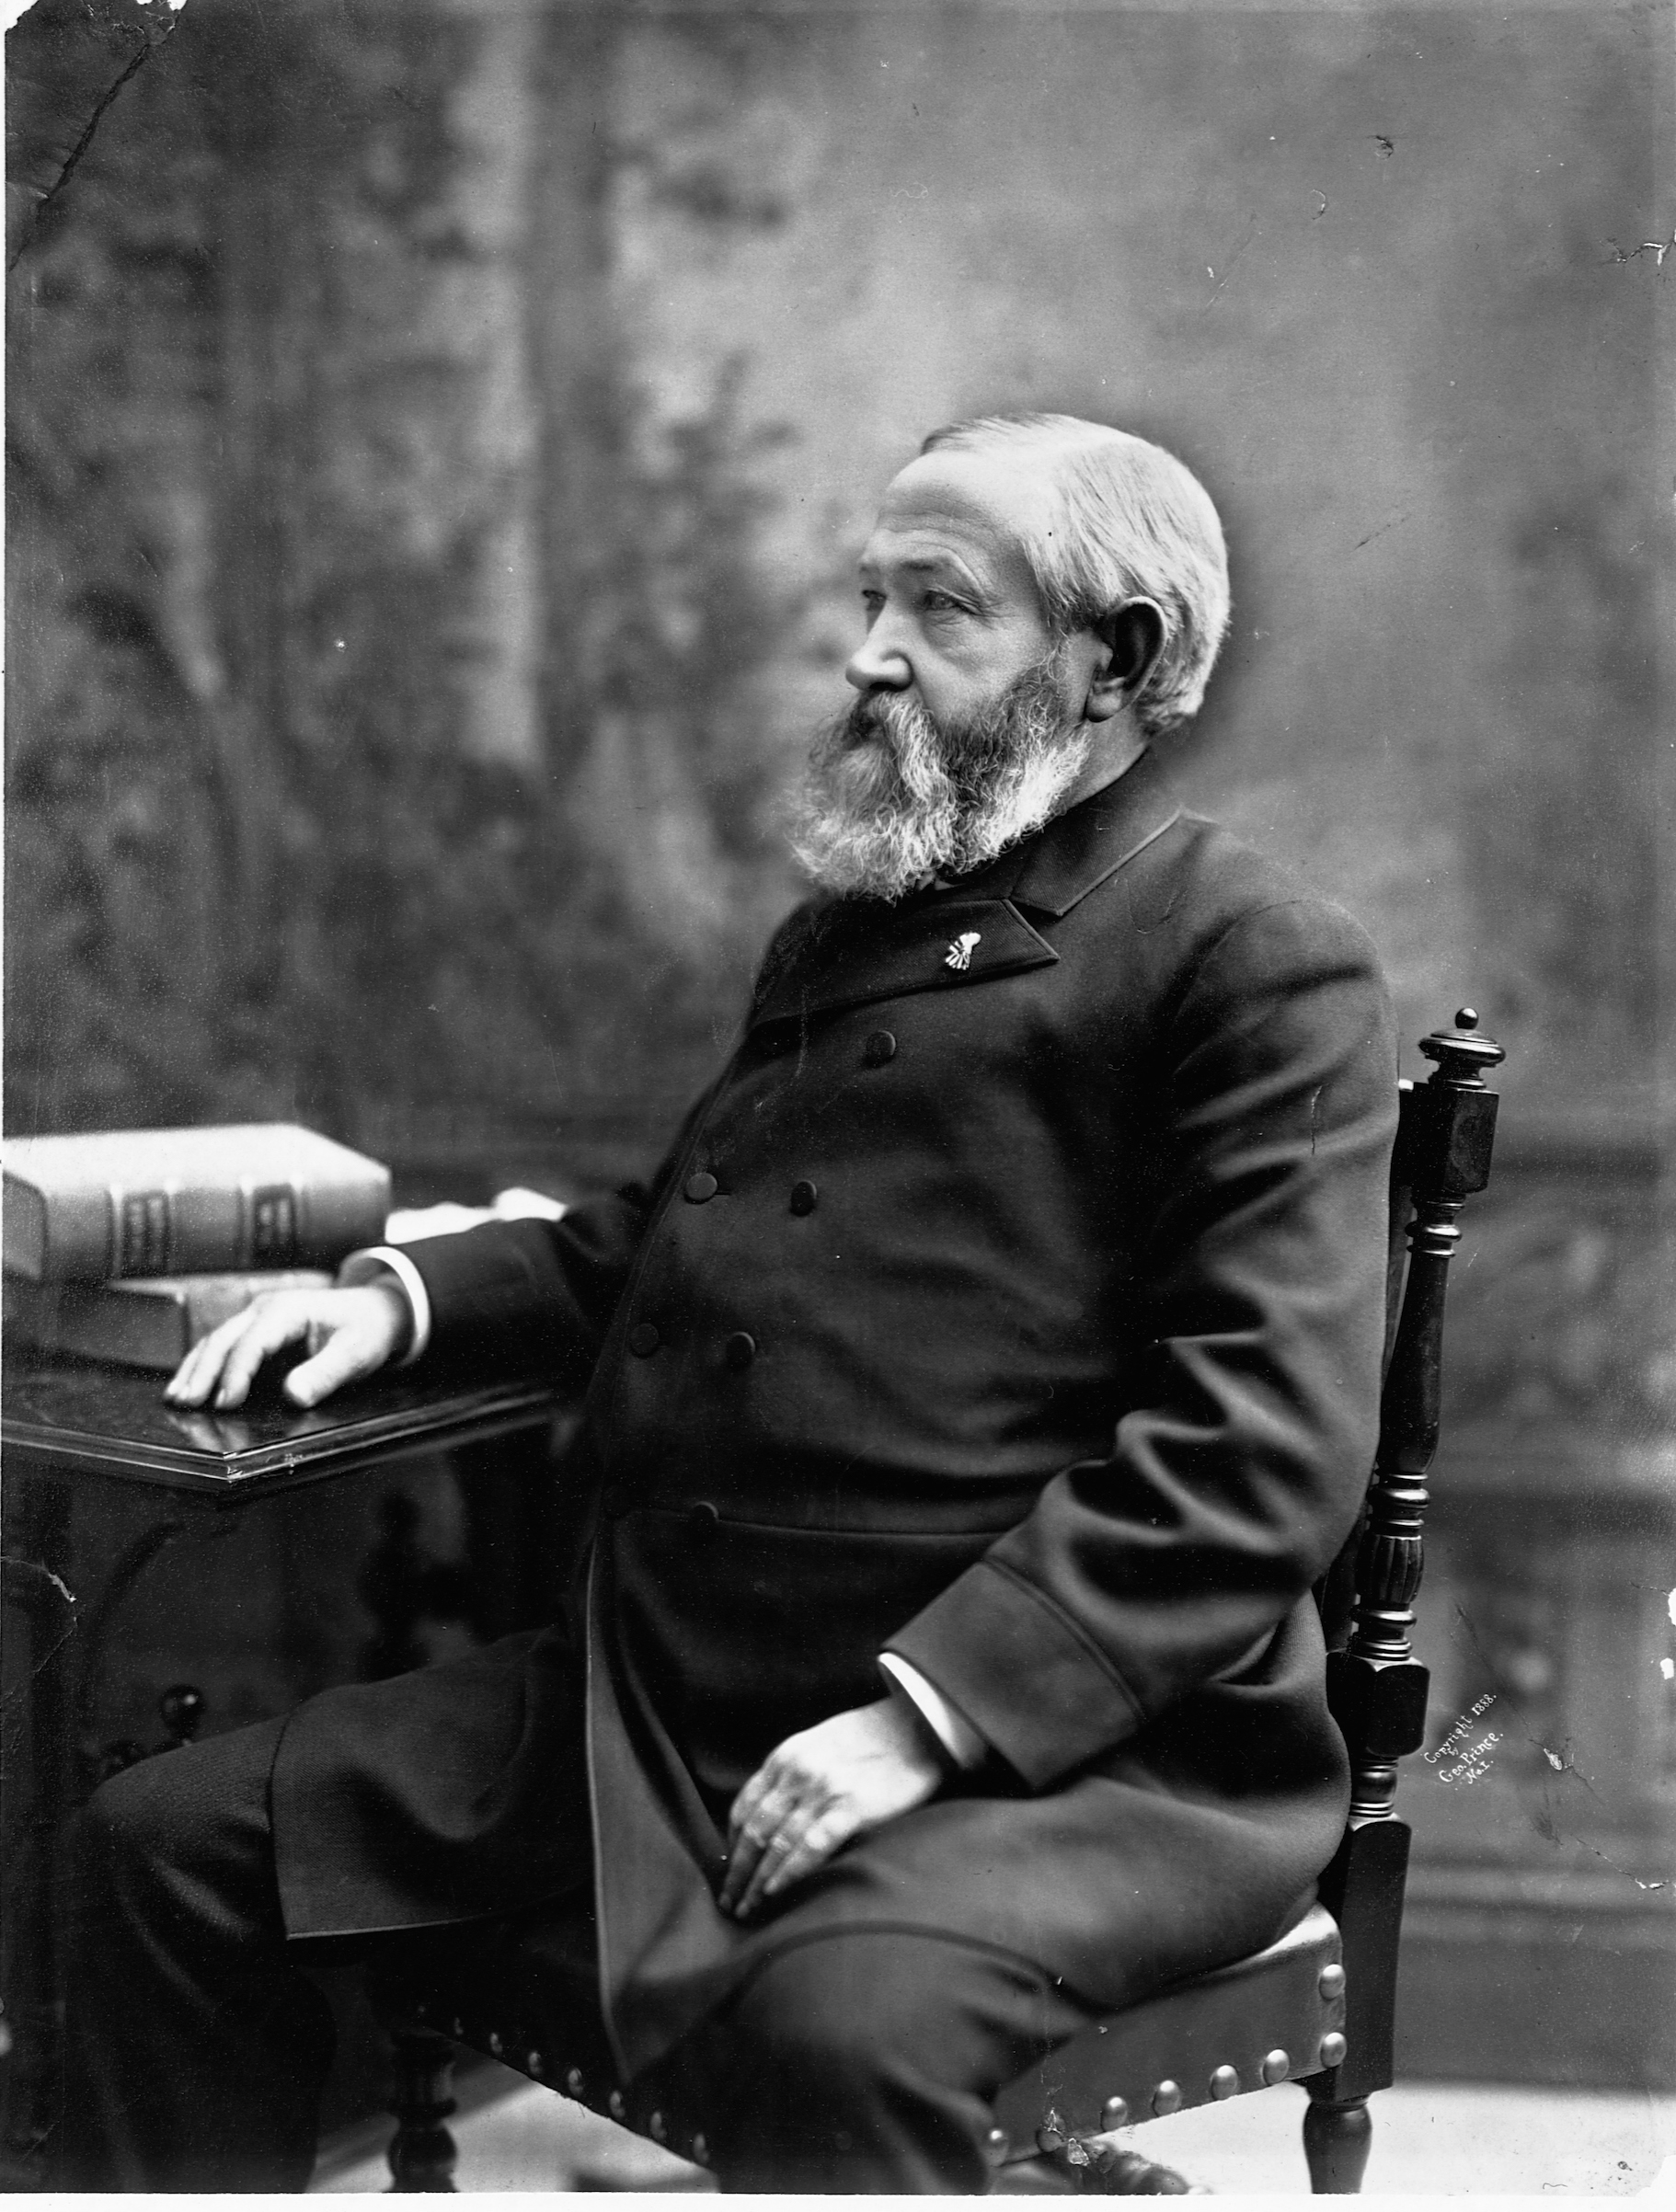 Benjamin Harrison (1833-1901) served as President of the United States from 1889 to 1893.